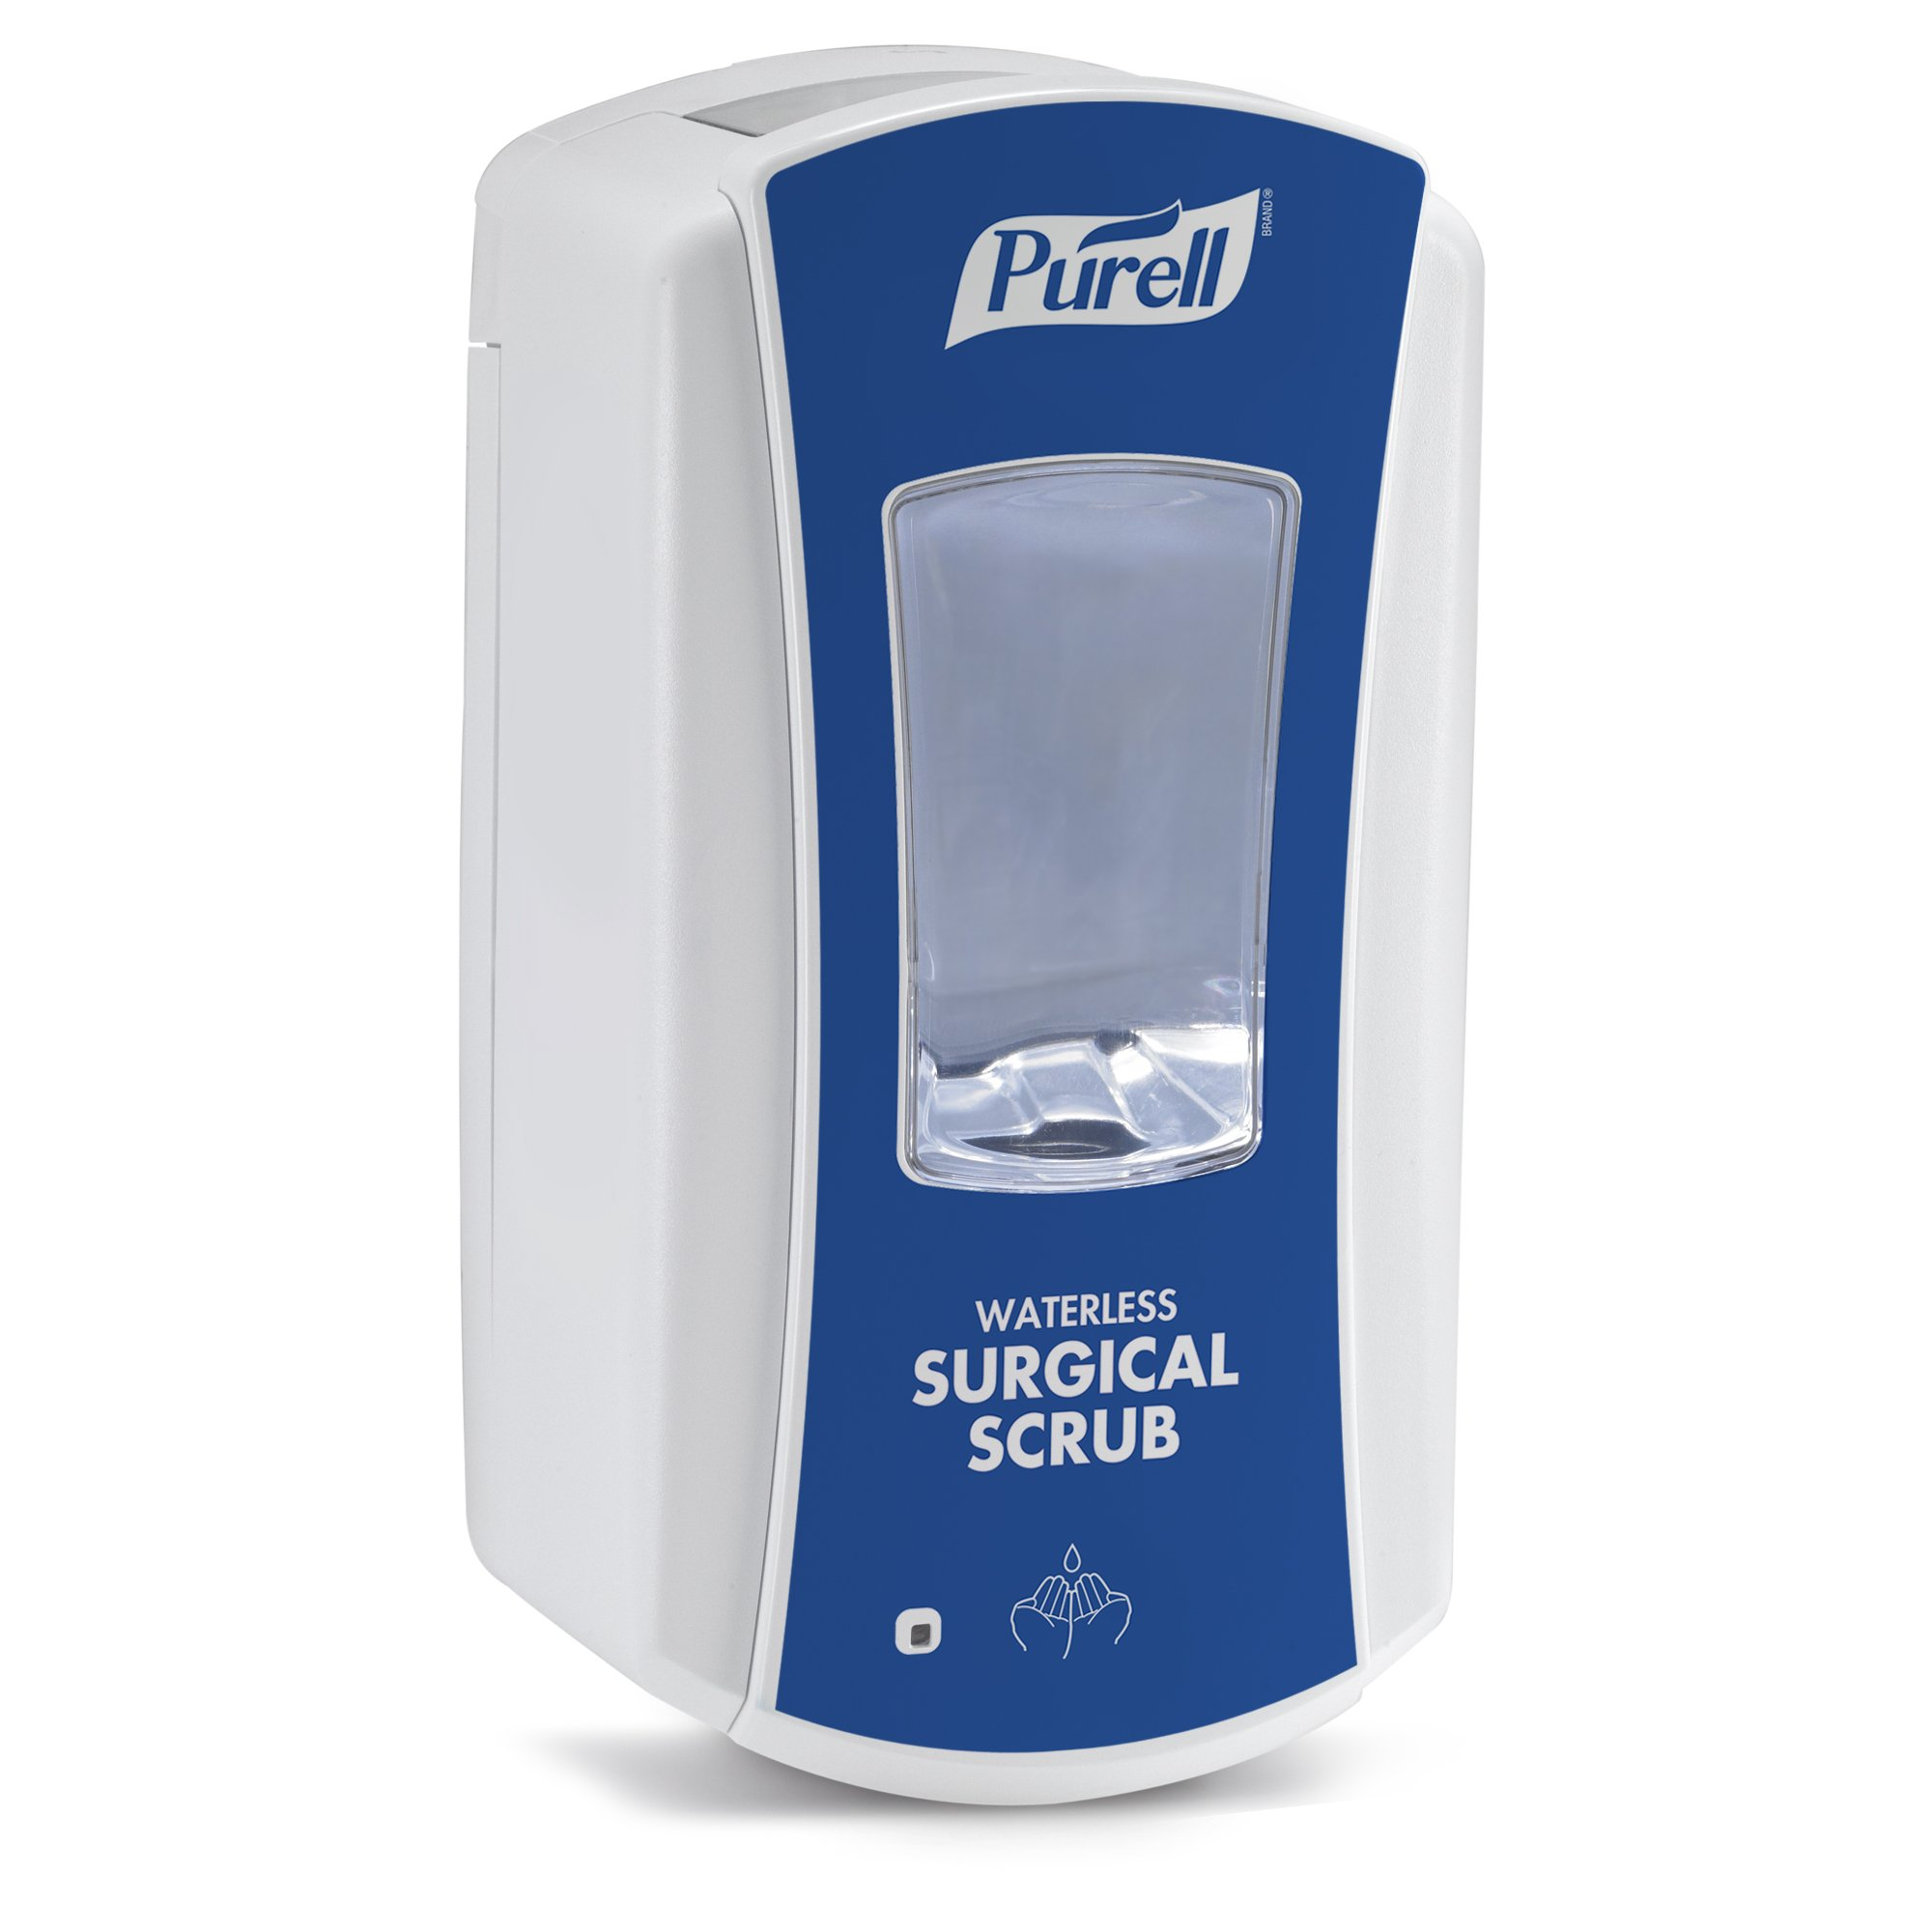 PURELL 1932-01 LTX-12 Touch-Free Waterless Surgical Scrub Dispenser – Blue and White, Dispenser for PURELL LTX-12 1200mL Refills